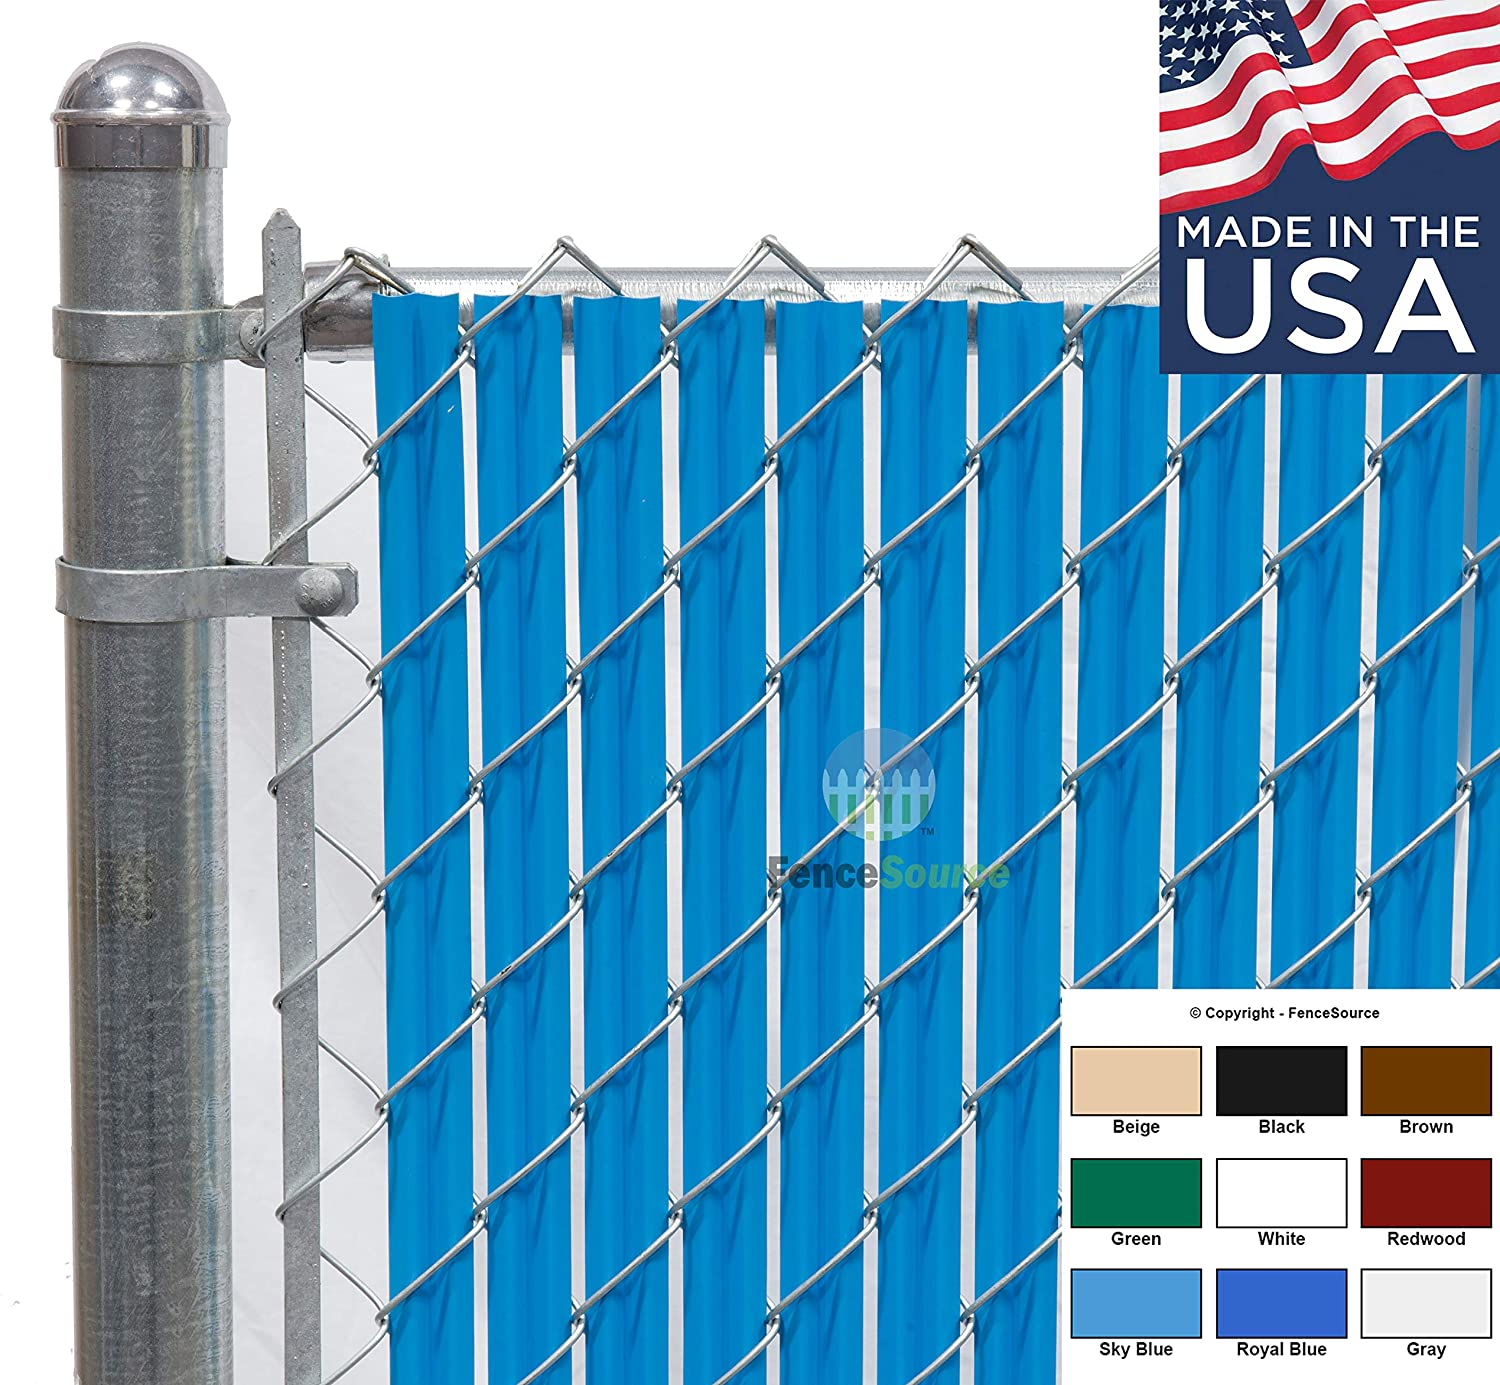 Fence Source Wave Slat (9 Colors) Single Wall Bottom Locking Privacy Slat for 4', 5', 6', 7' and 8' Chain Link Fence (4 ft, Sky Blue)